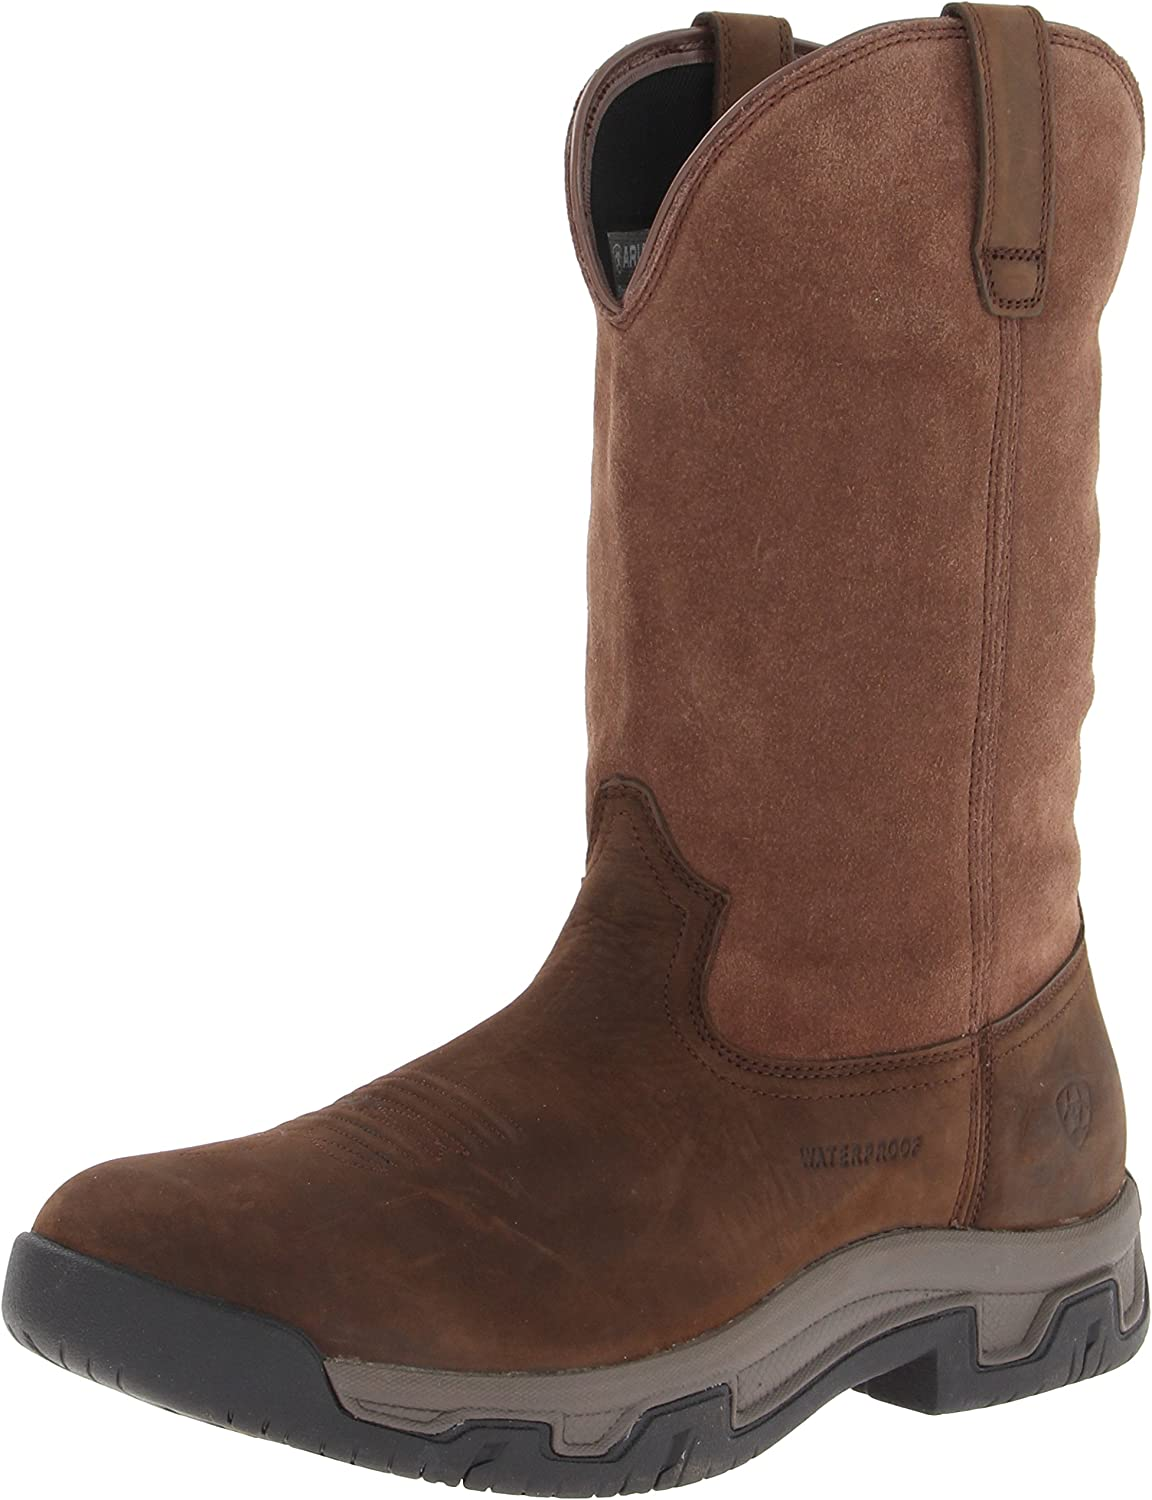 ARIAT Men s Terrain Pull On Waterproof Boot